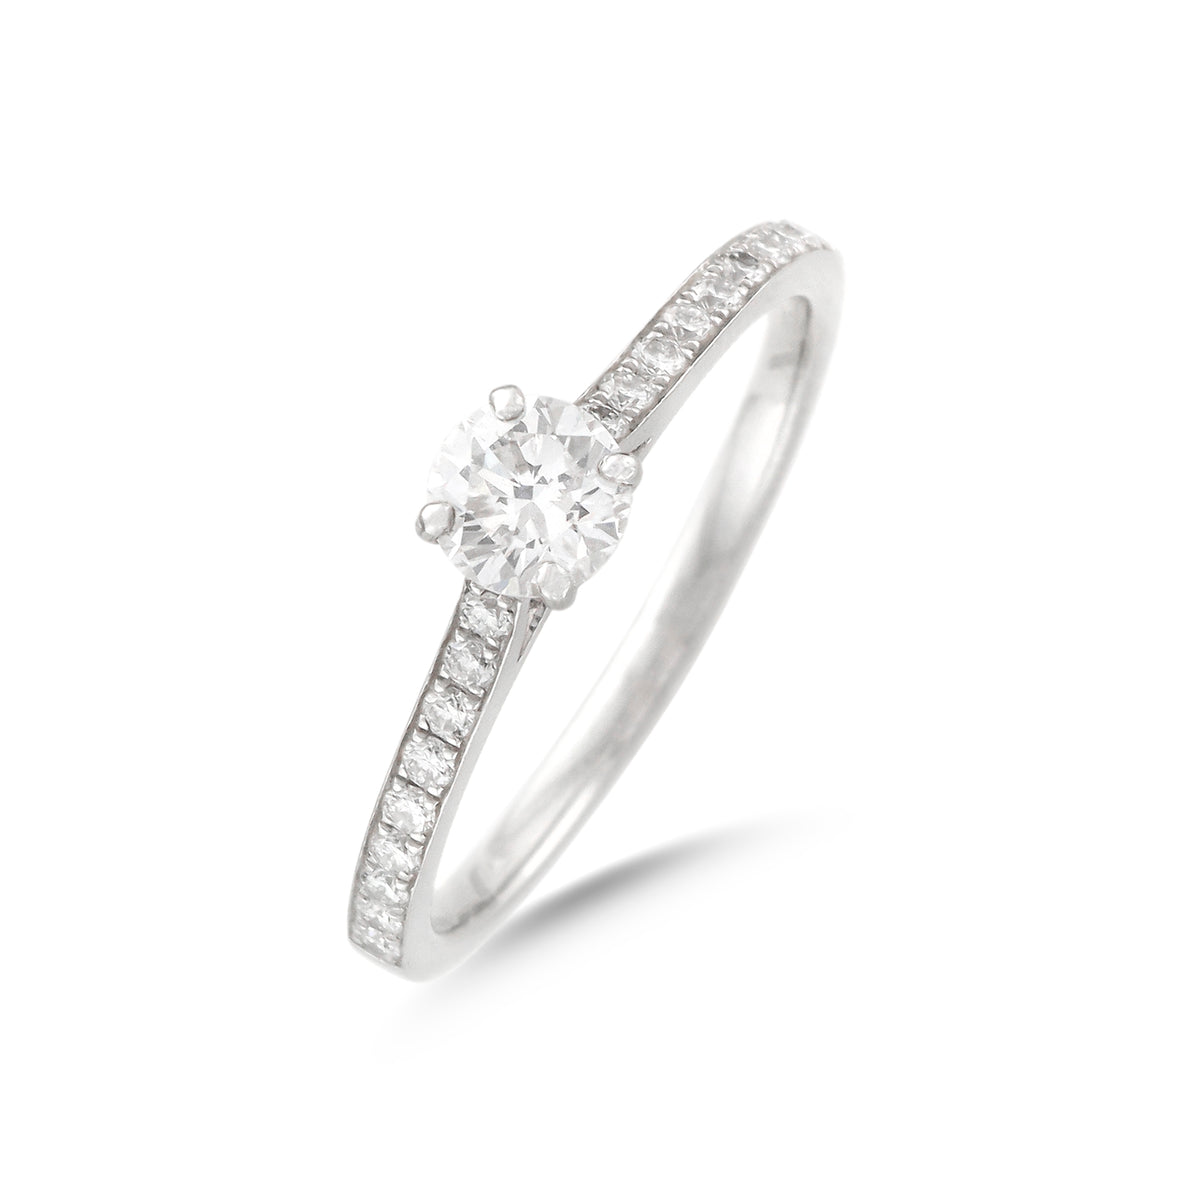 0.46ct Round Brilliant Diamond Engagement Ring